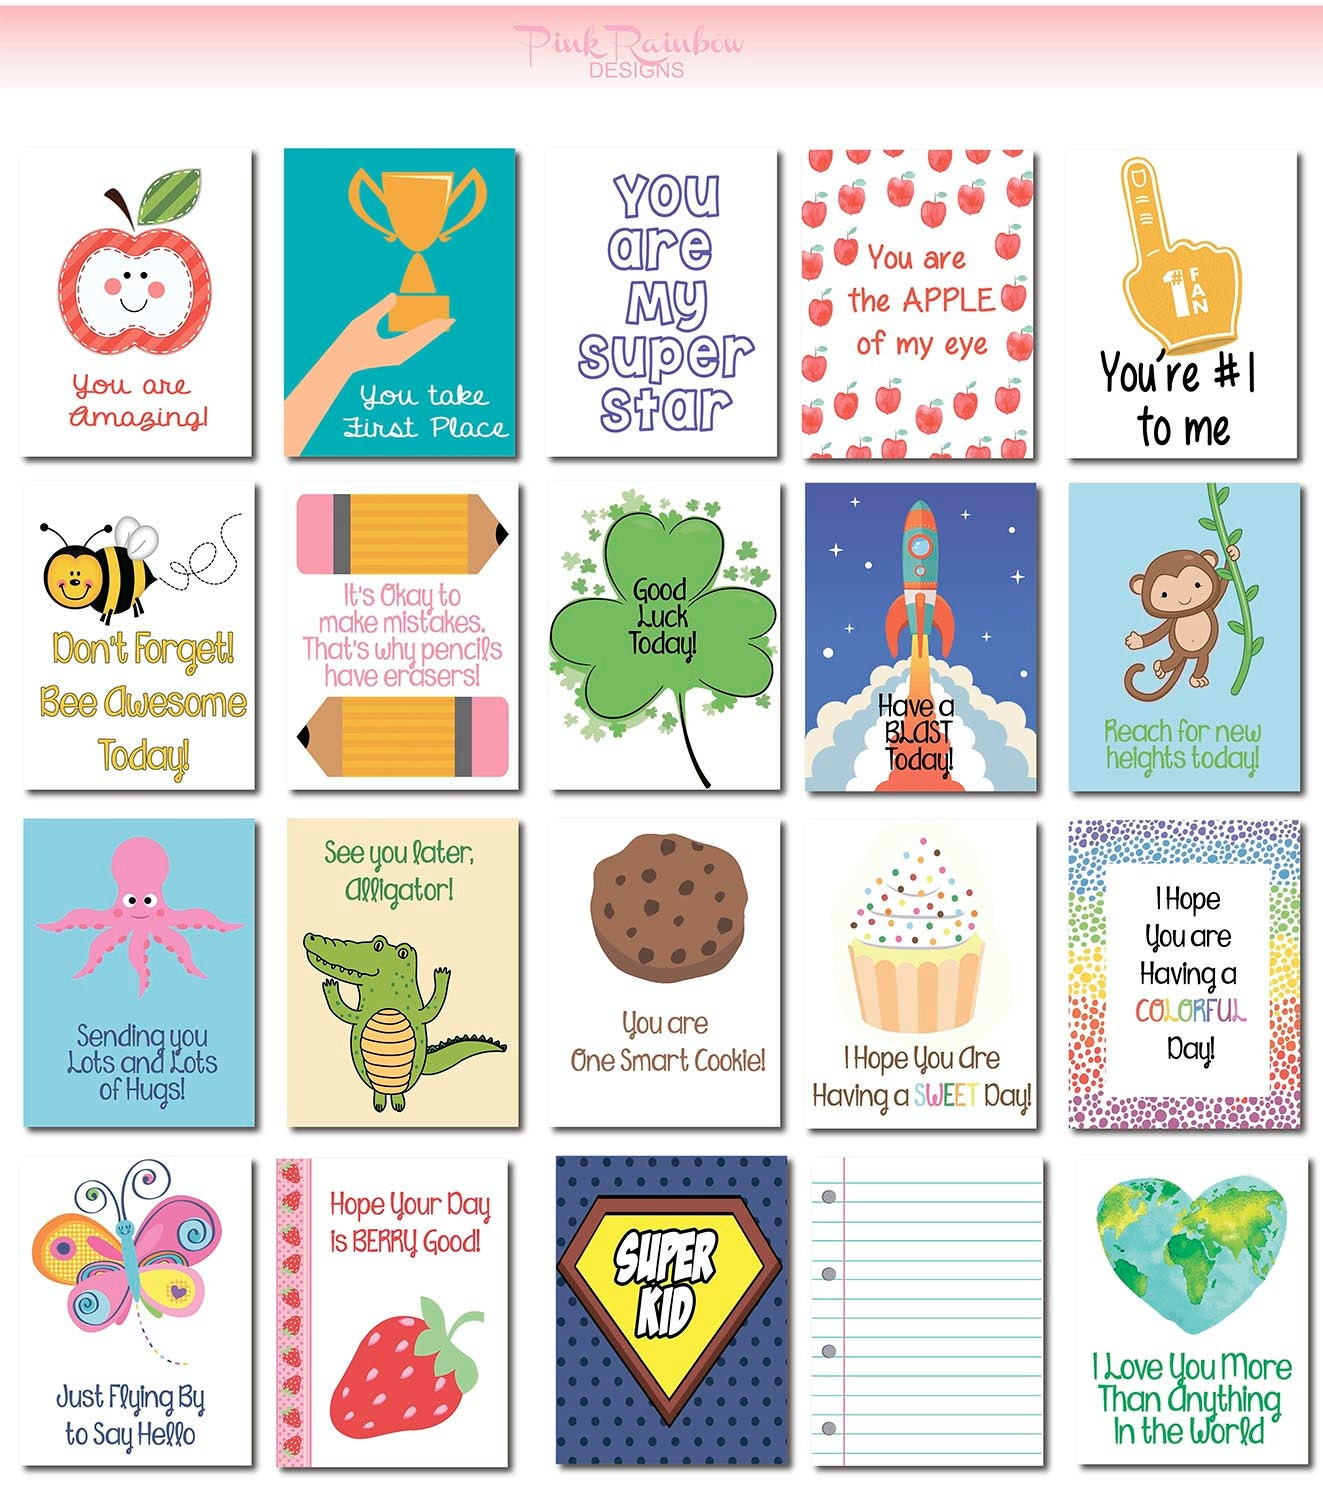 20 Lunch Box Notes Cards with Motivational Messages for Kids